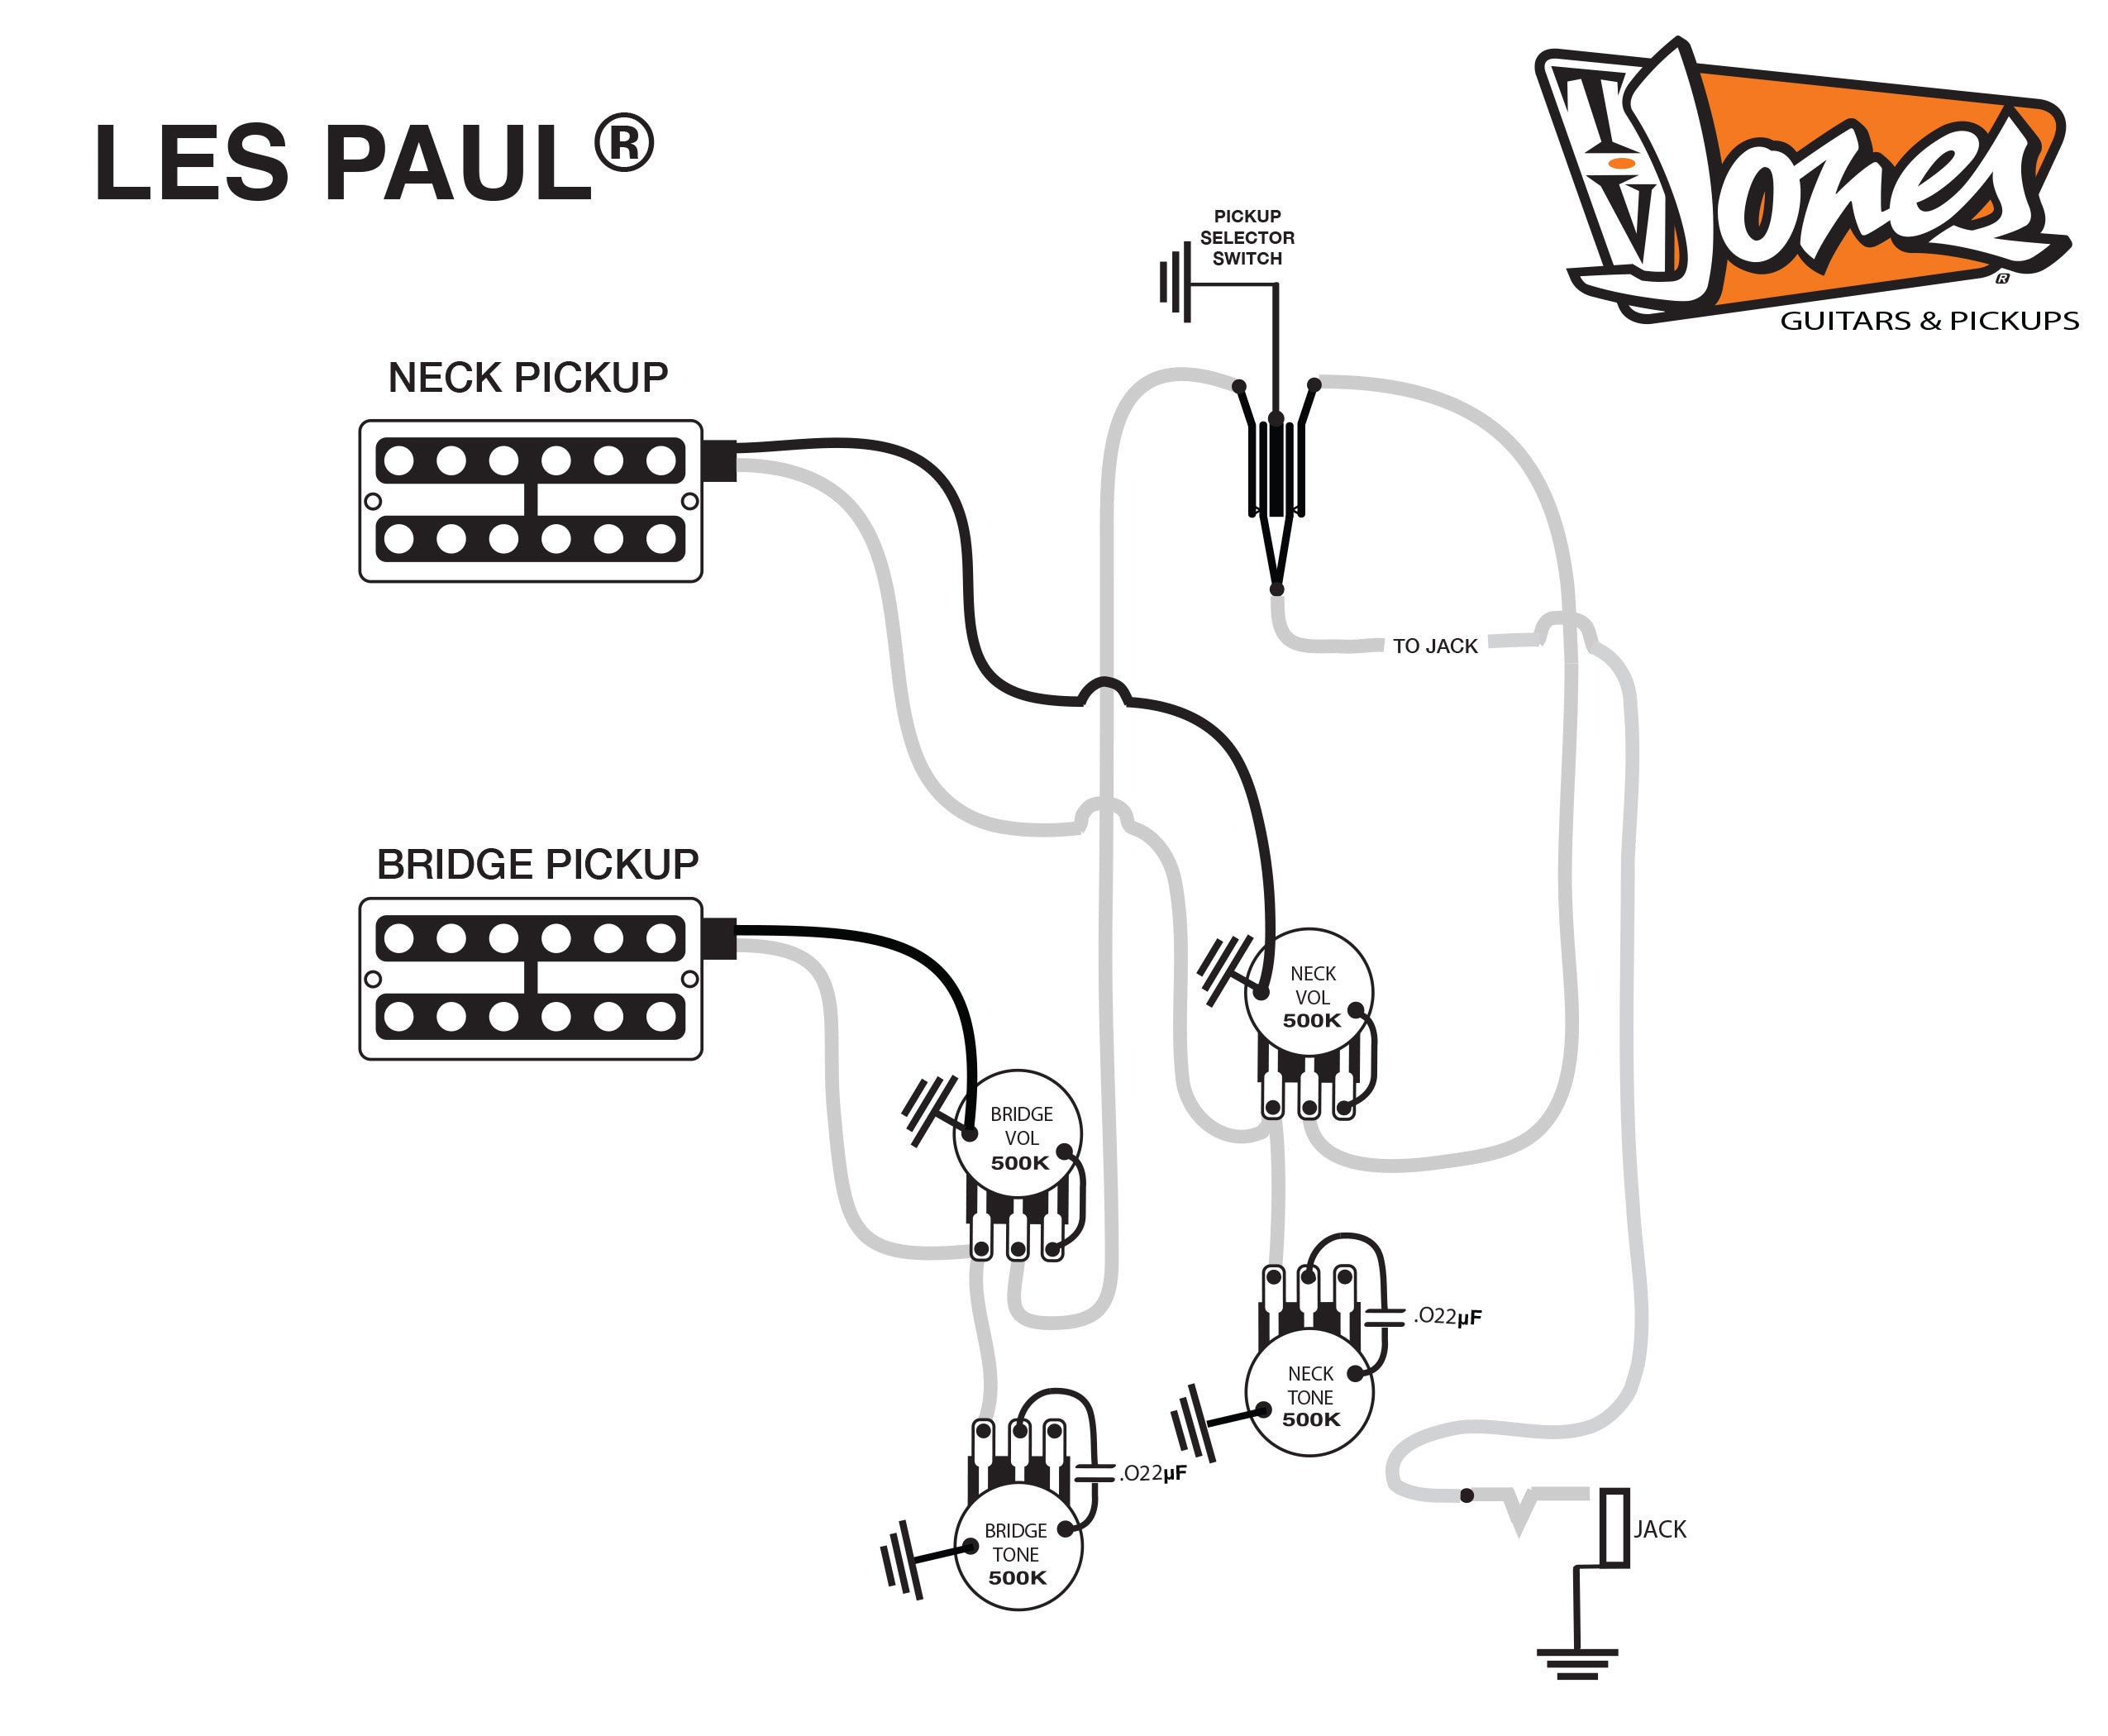 Tv Jones Product Dimensions Gibson Les Paul Standard Wiring Diagram Four Conductor Guitar Schematics